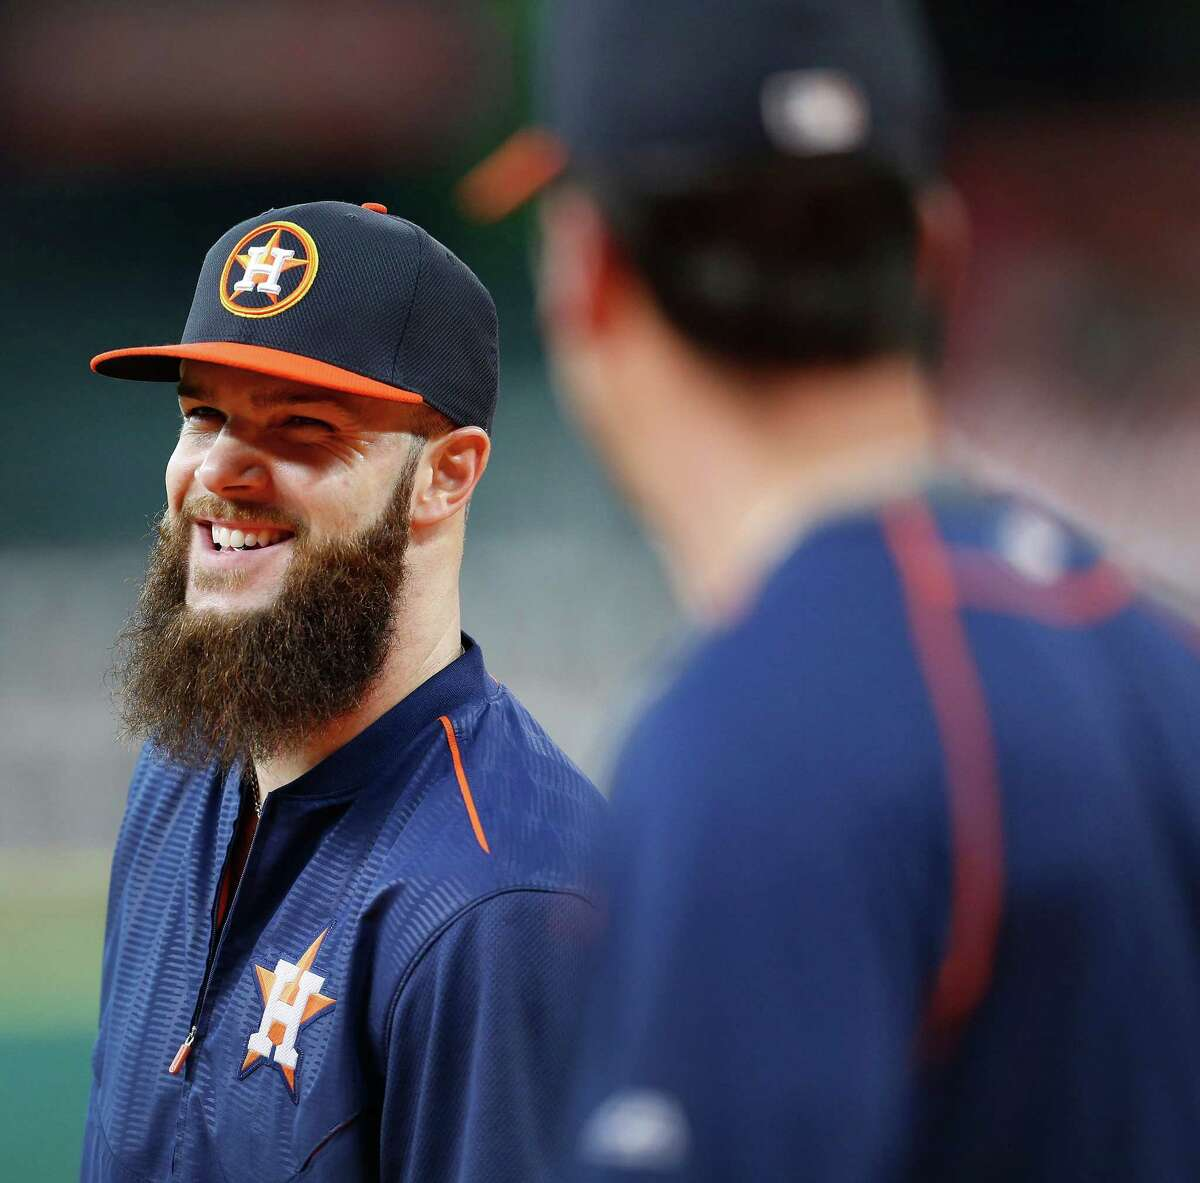 Dallas Keuchel 7th round (2009) No one thought too much of Keuchel when he was drafted out of Arkansas and even as he quietly made his way through the minors. Then, in his third full season in the big leagues, he won the AL Cy Young Award.